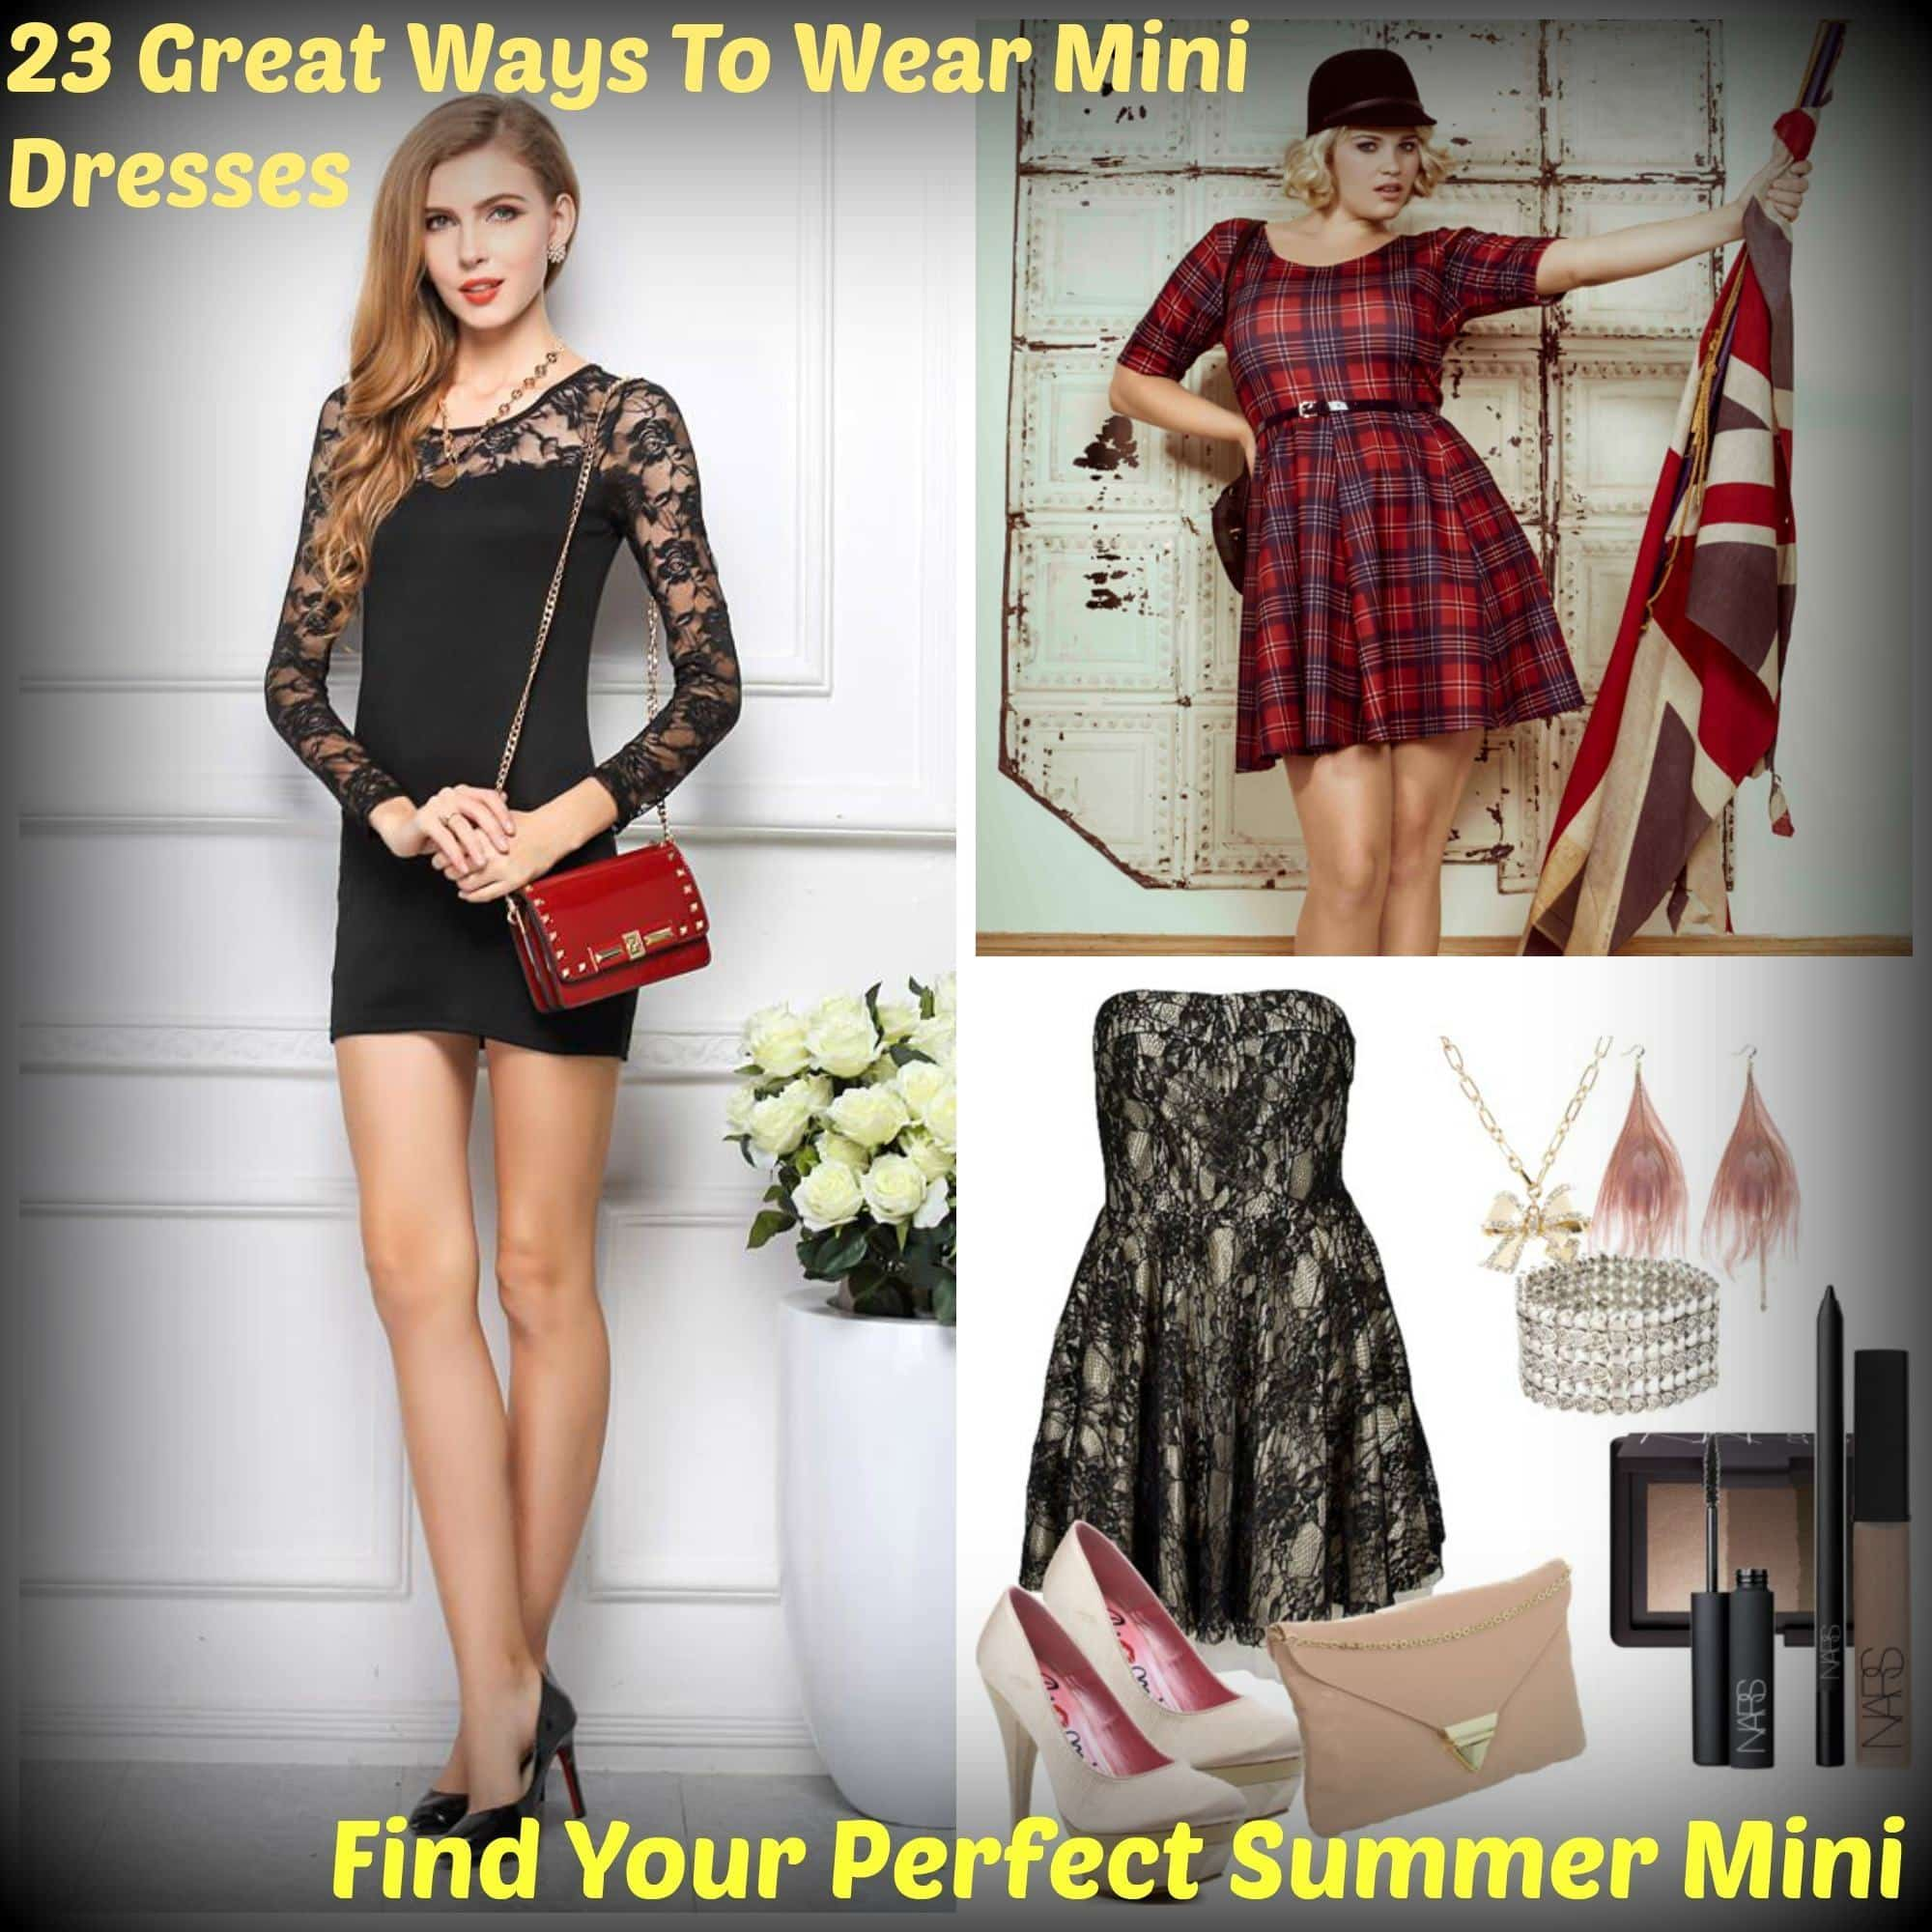 MiniCollage How To Wear Mini Dresses? 23 Great Ways To Wear Mini Dresses